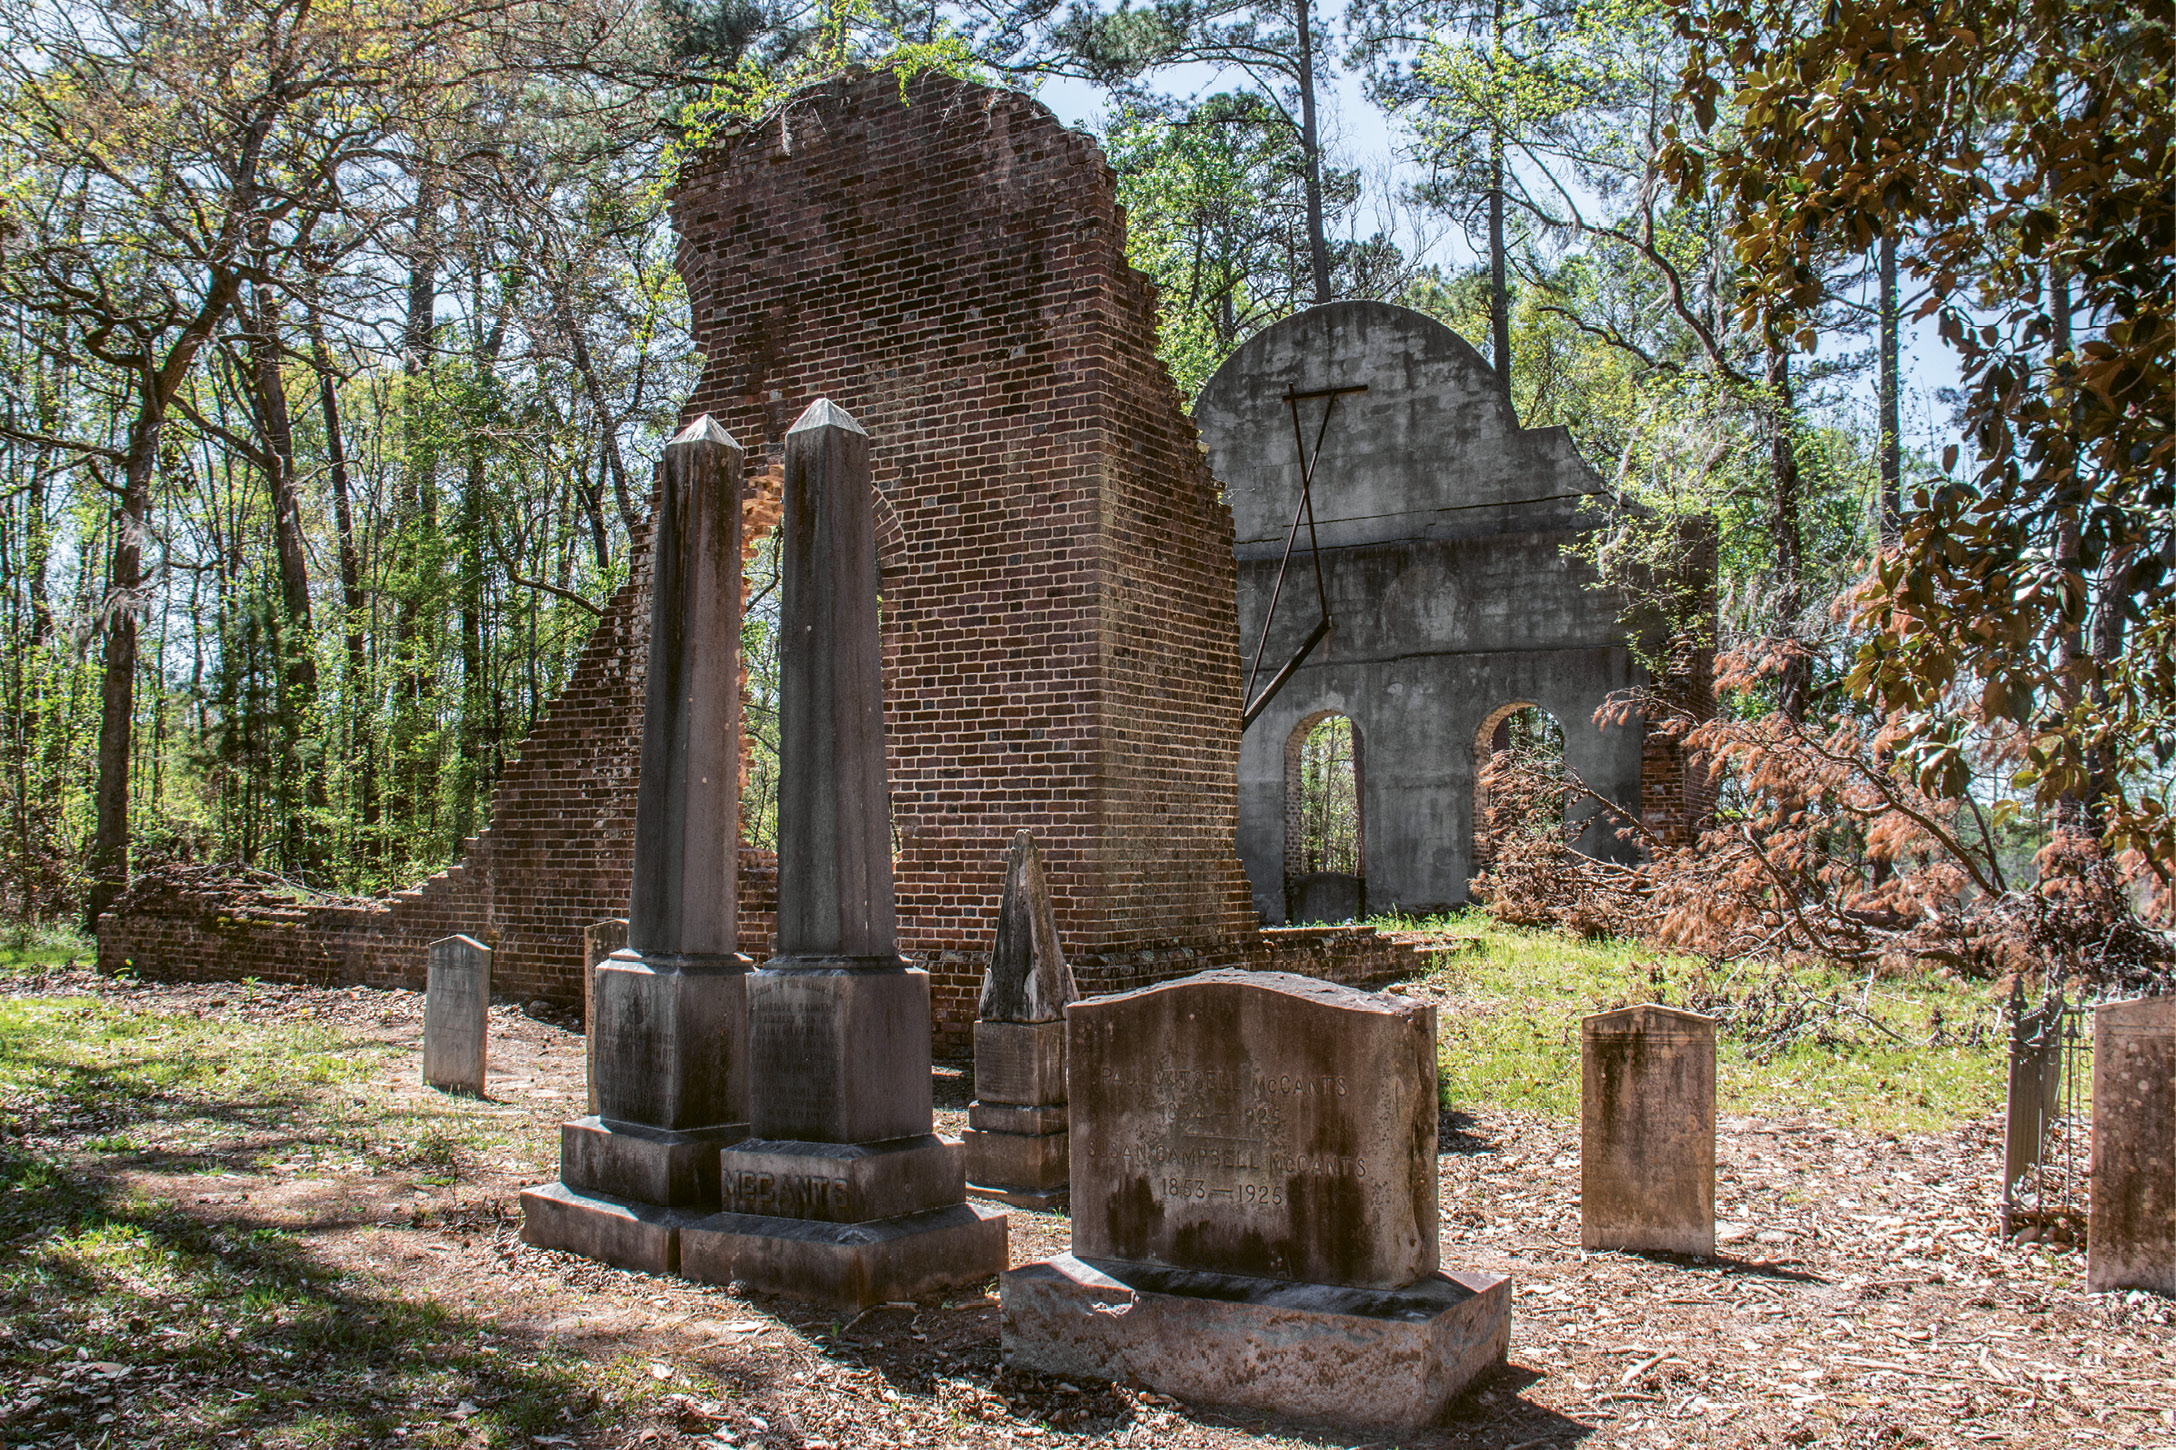 Pon Pon Chapel-of-Ease: Crumbling walls, part of a cistern, and a churchyard are all that remain of this chapel off Parkers Ferry Road, formerly a busy stagecoach road between Charleston and Savannah.